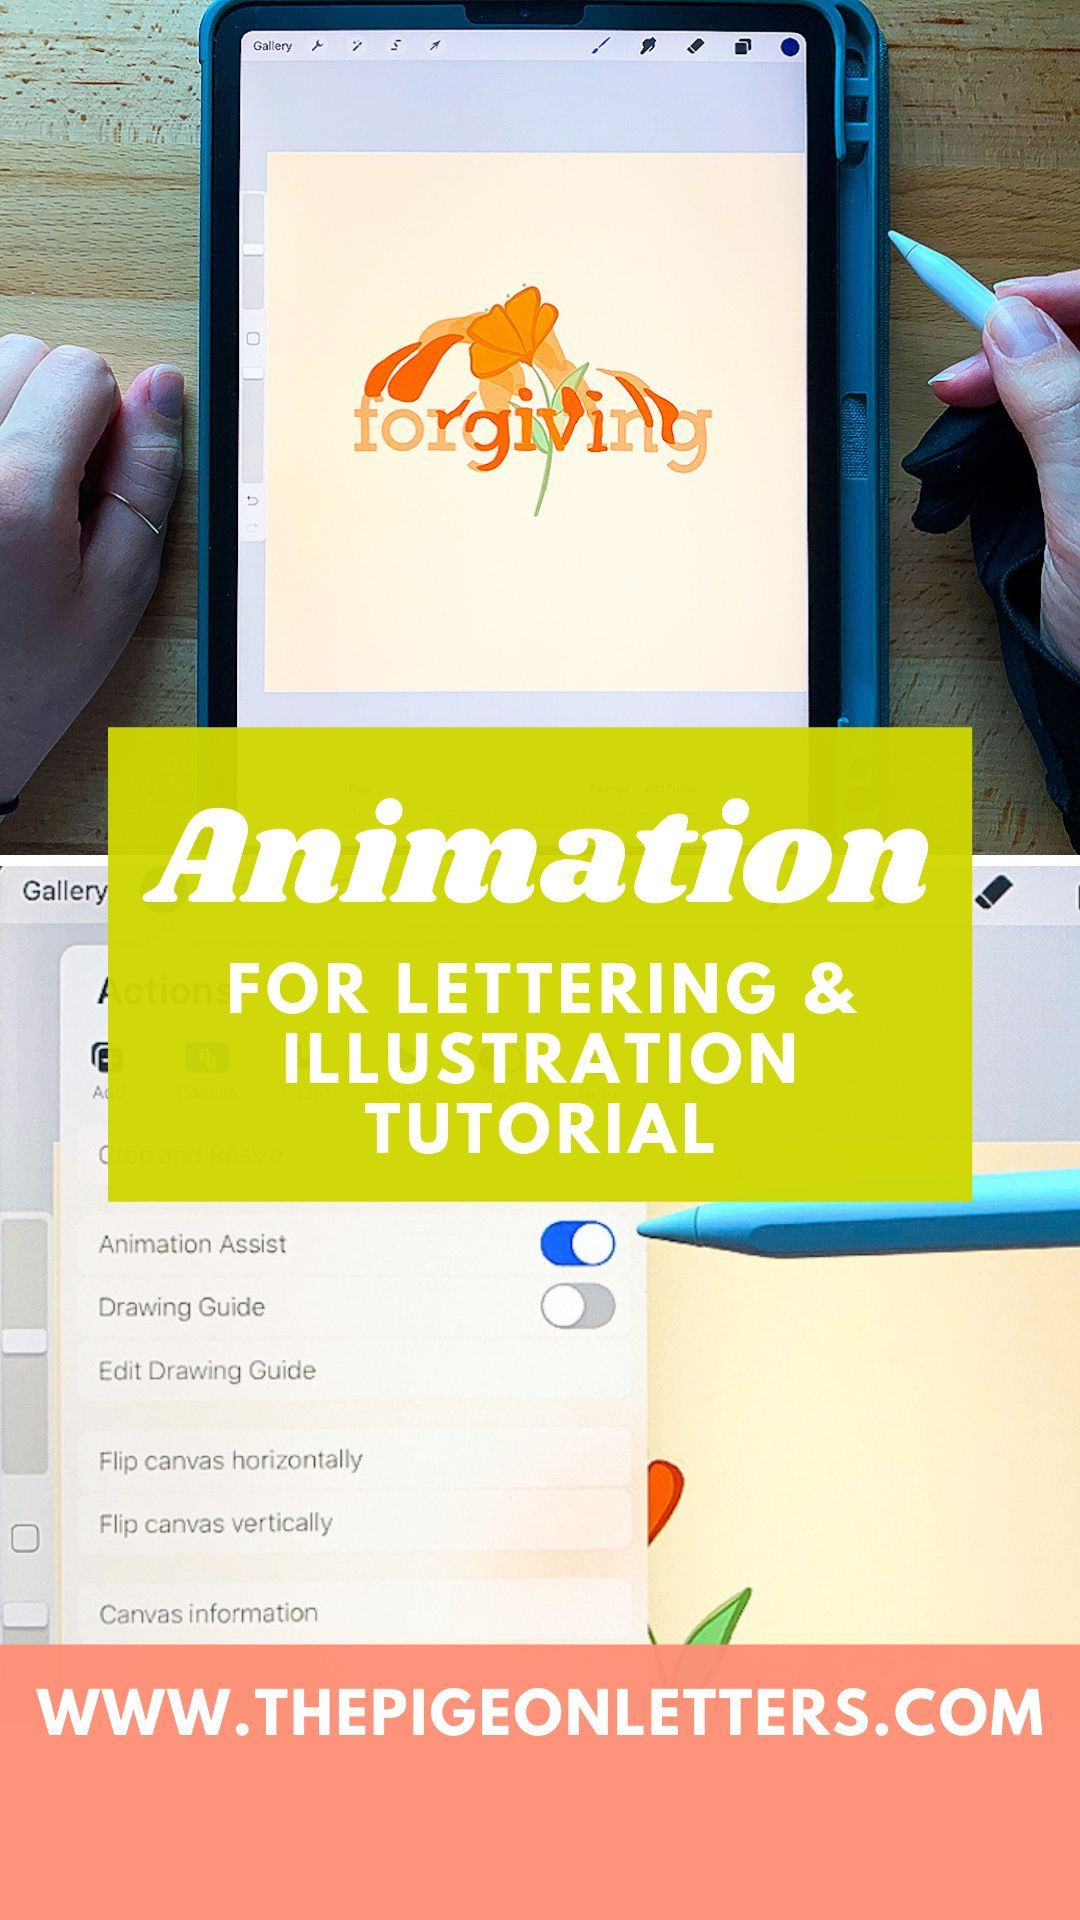 How To Animate Lettering Into Illustrations In 2020 Lettering Illustrator Tutorials Animation